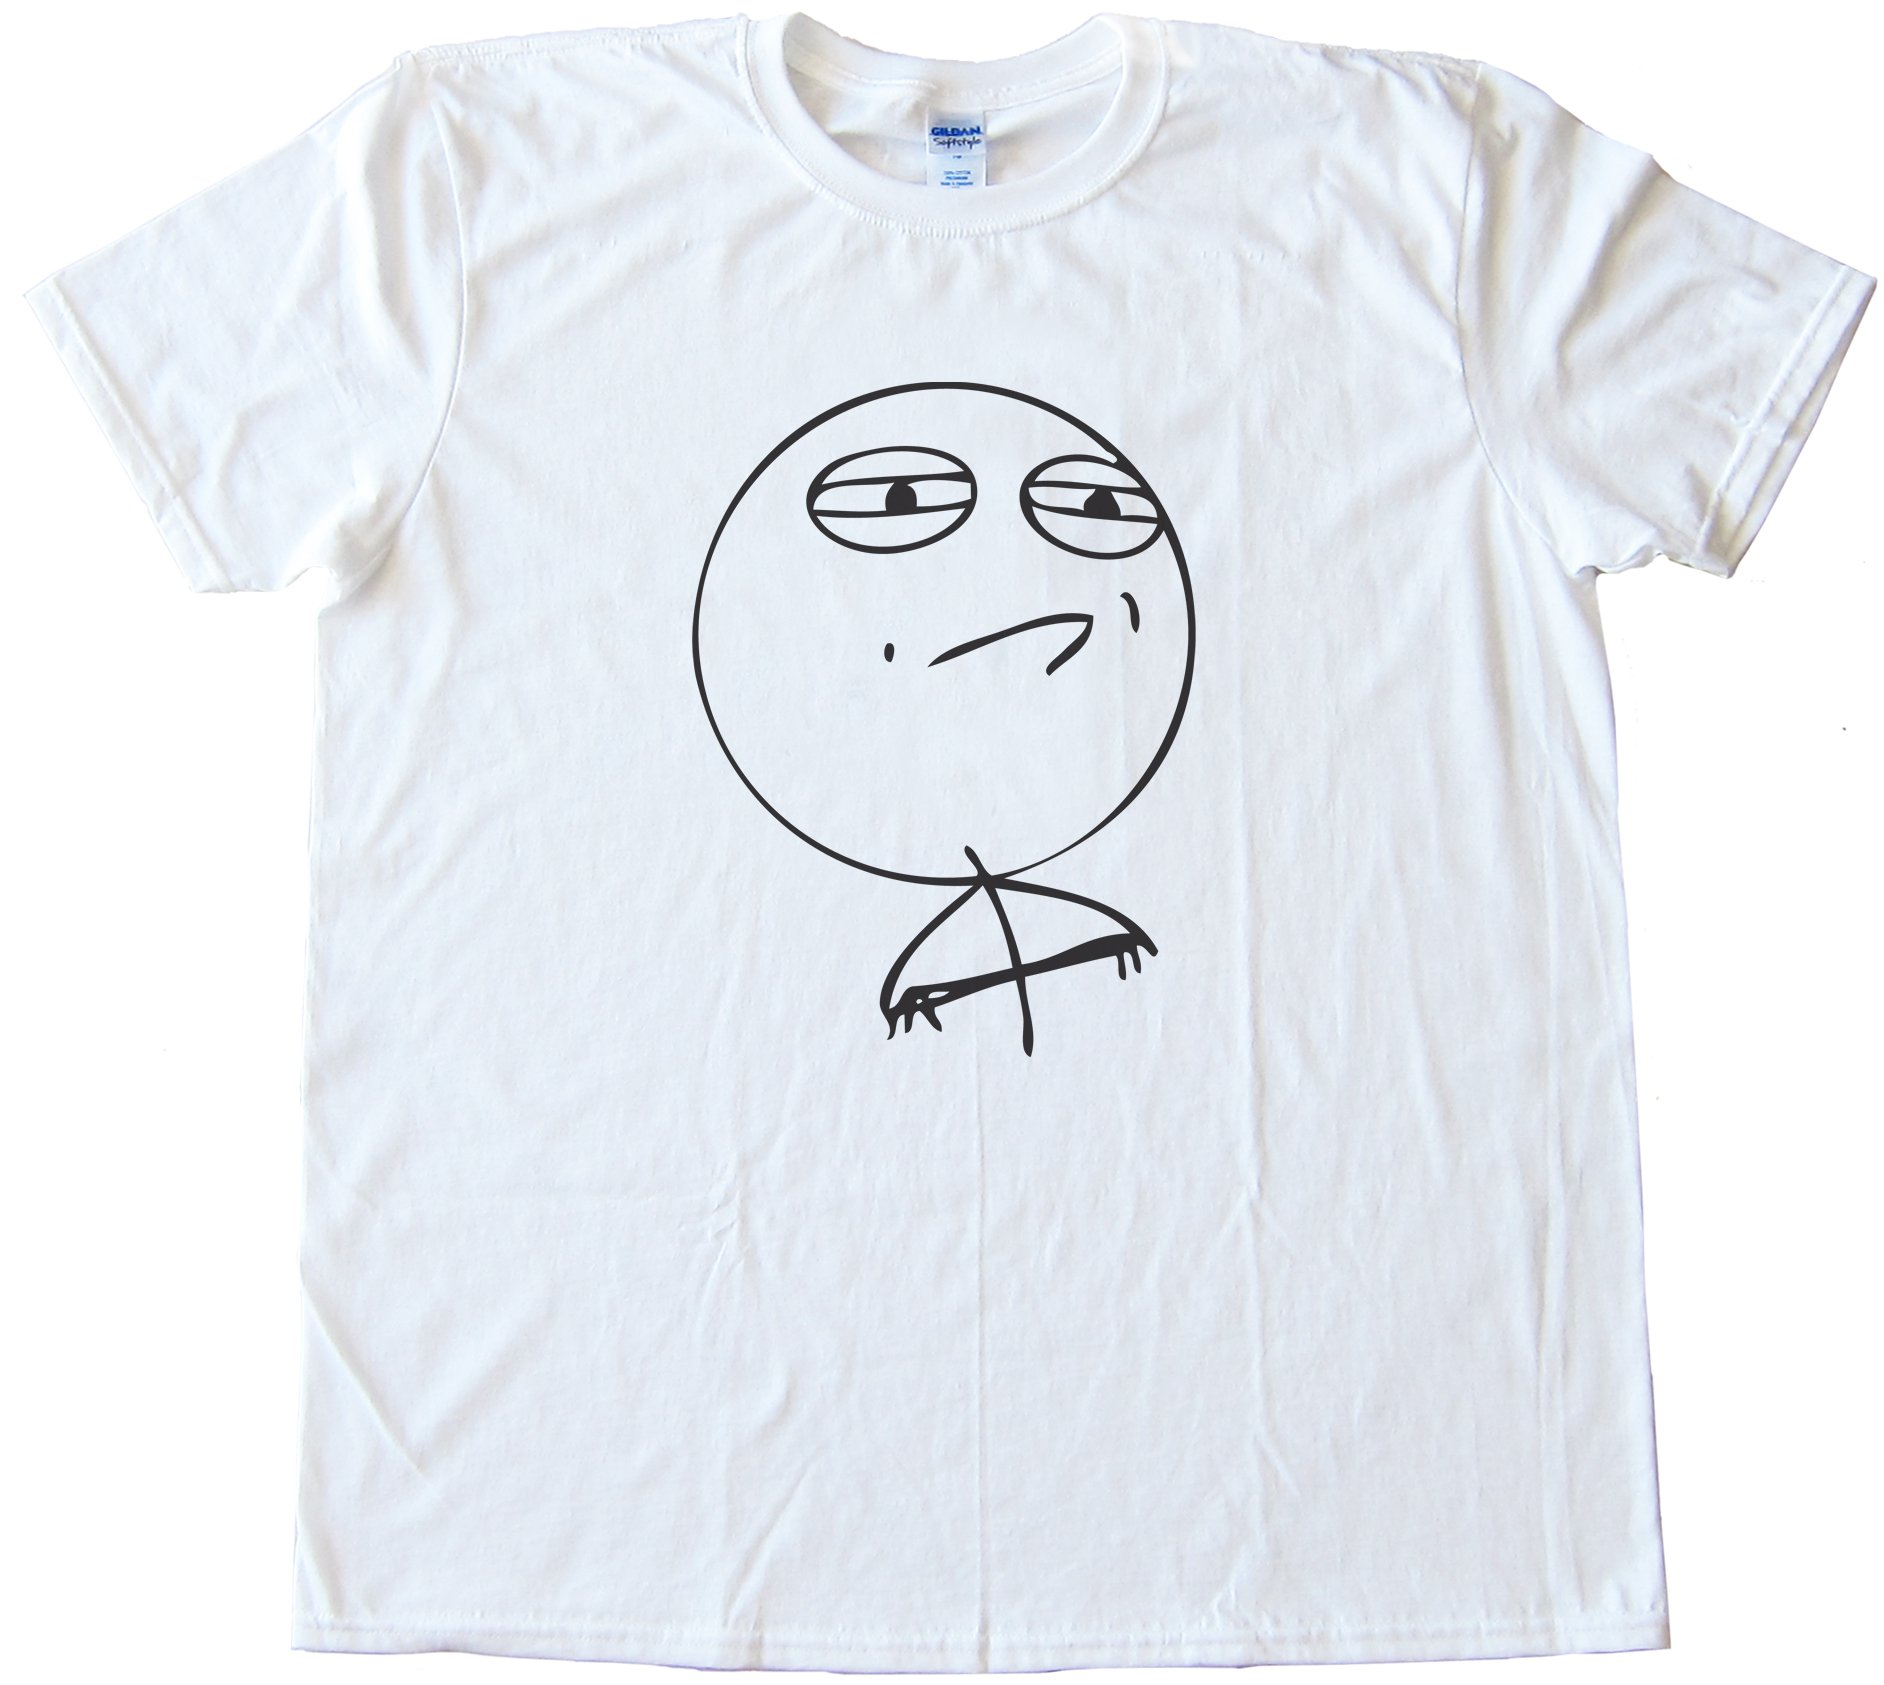 Challenge Accepted Rage Face Shirt Tee Shirt